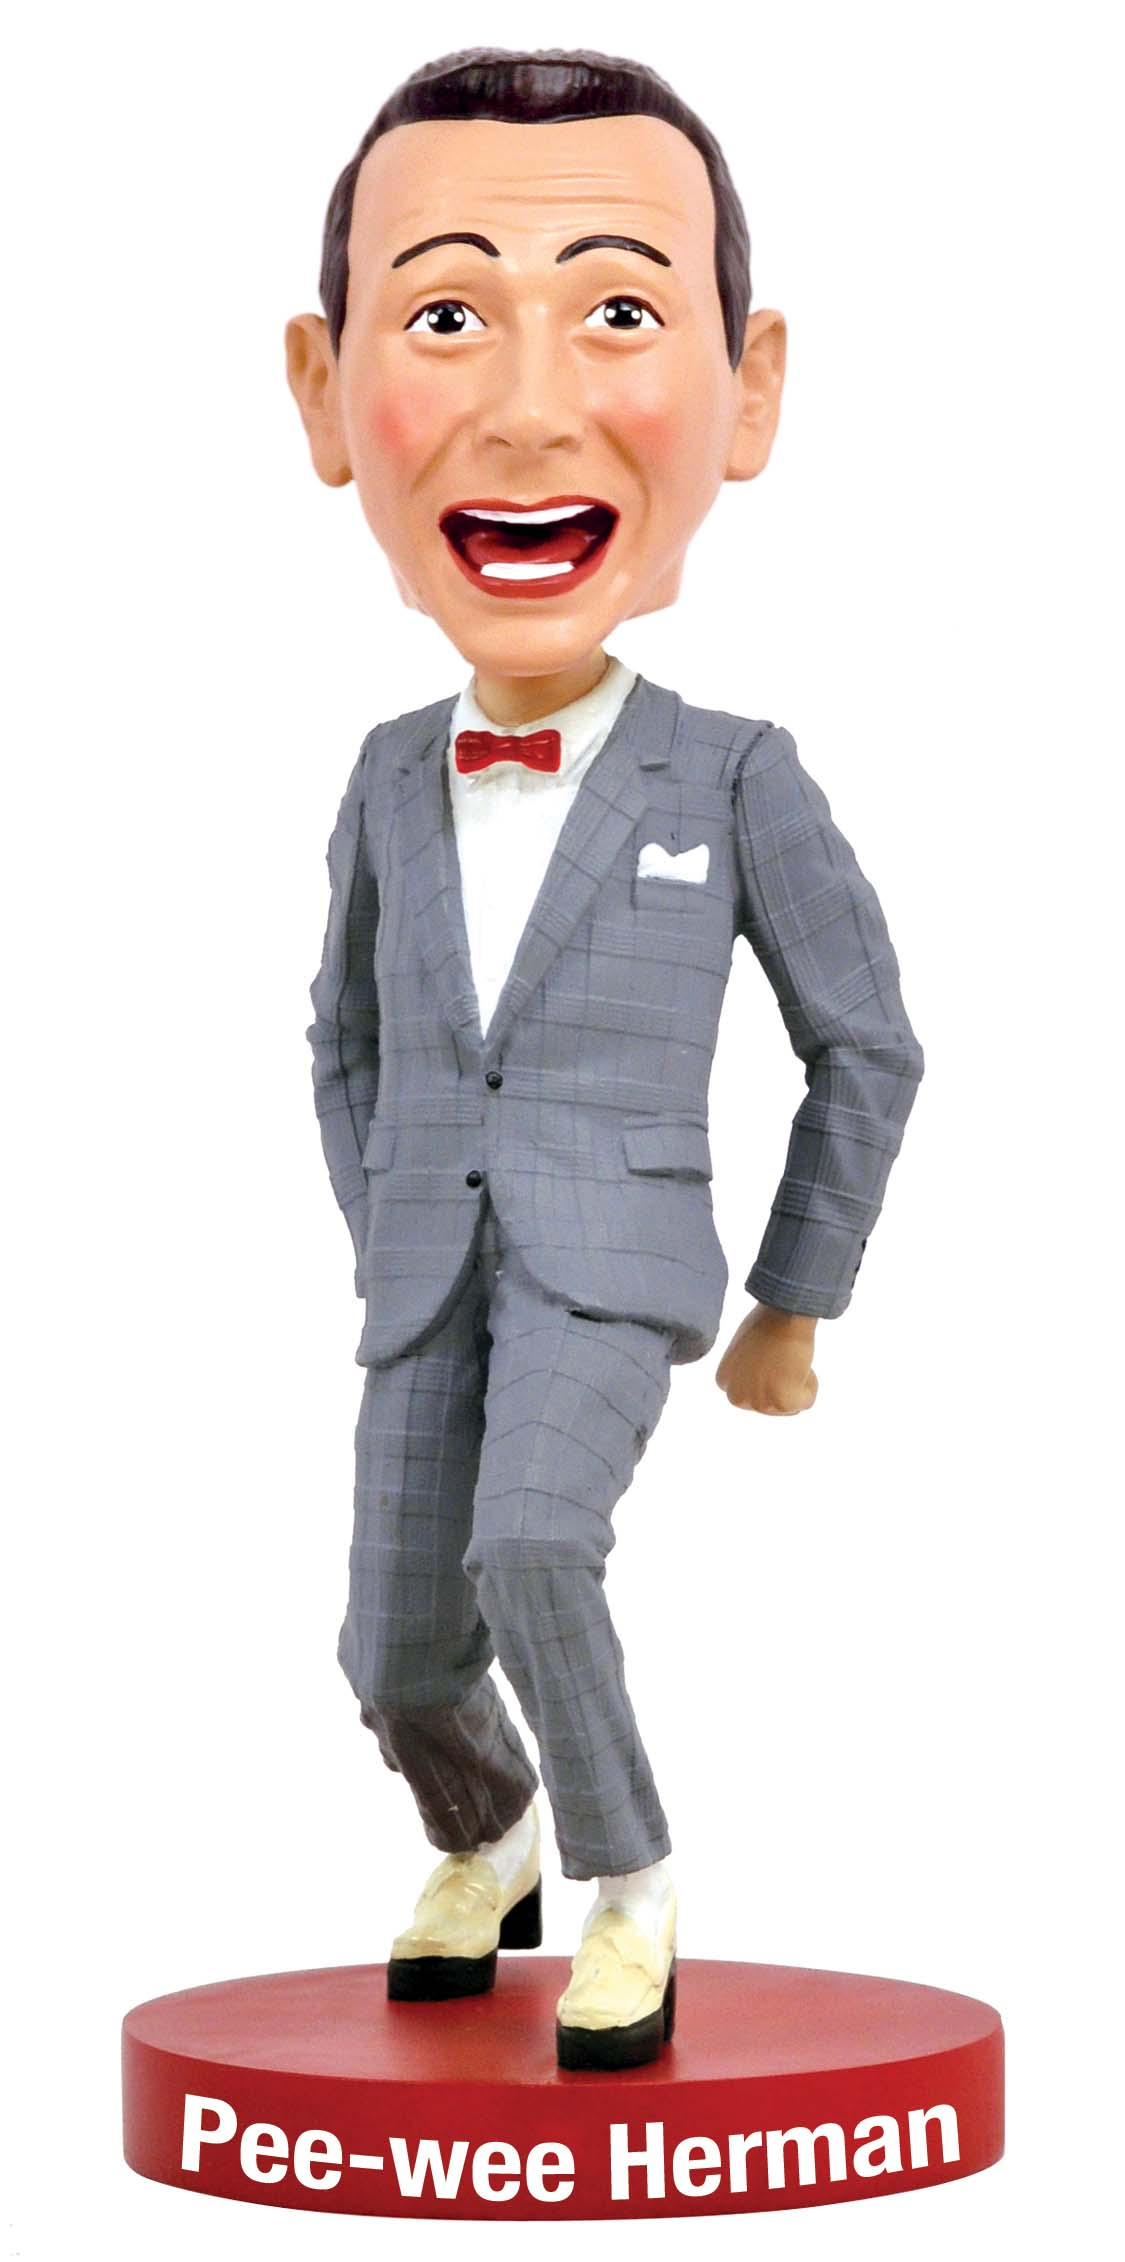 MY NEW BOBBLEHEAD!!! - Pee-wee's blog